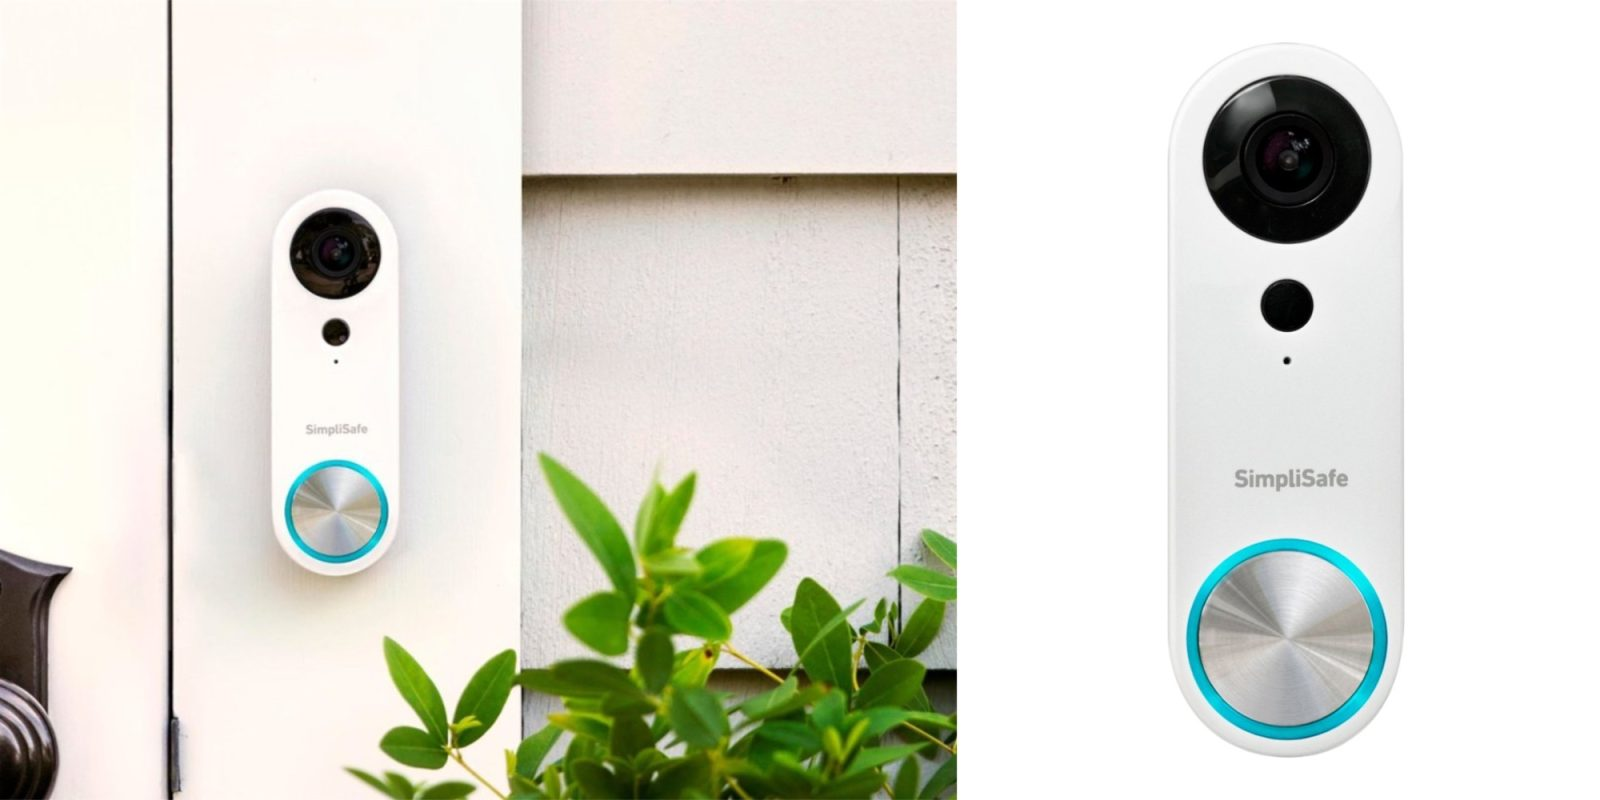 SimpliSafe's Pro Smart 1080p Video Doorbell gets $69 discount to $100